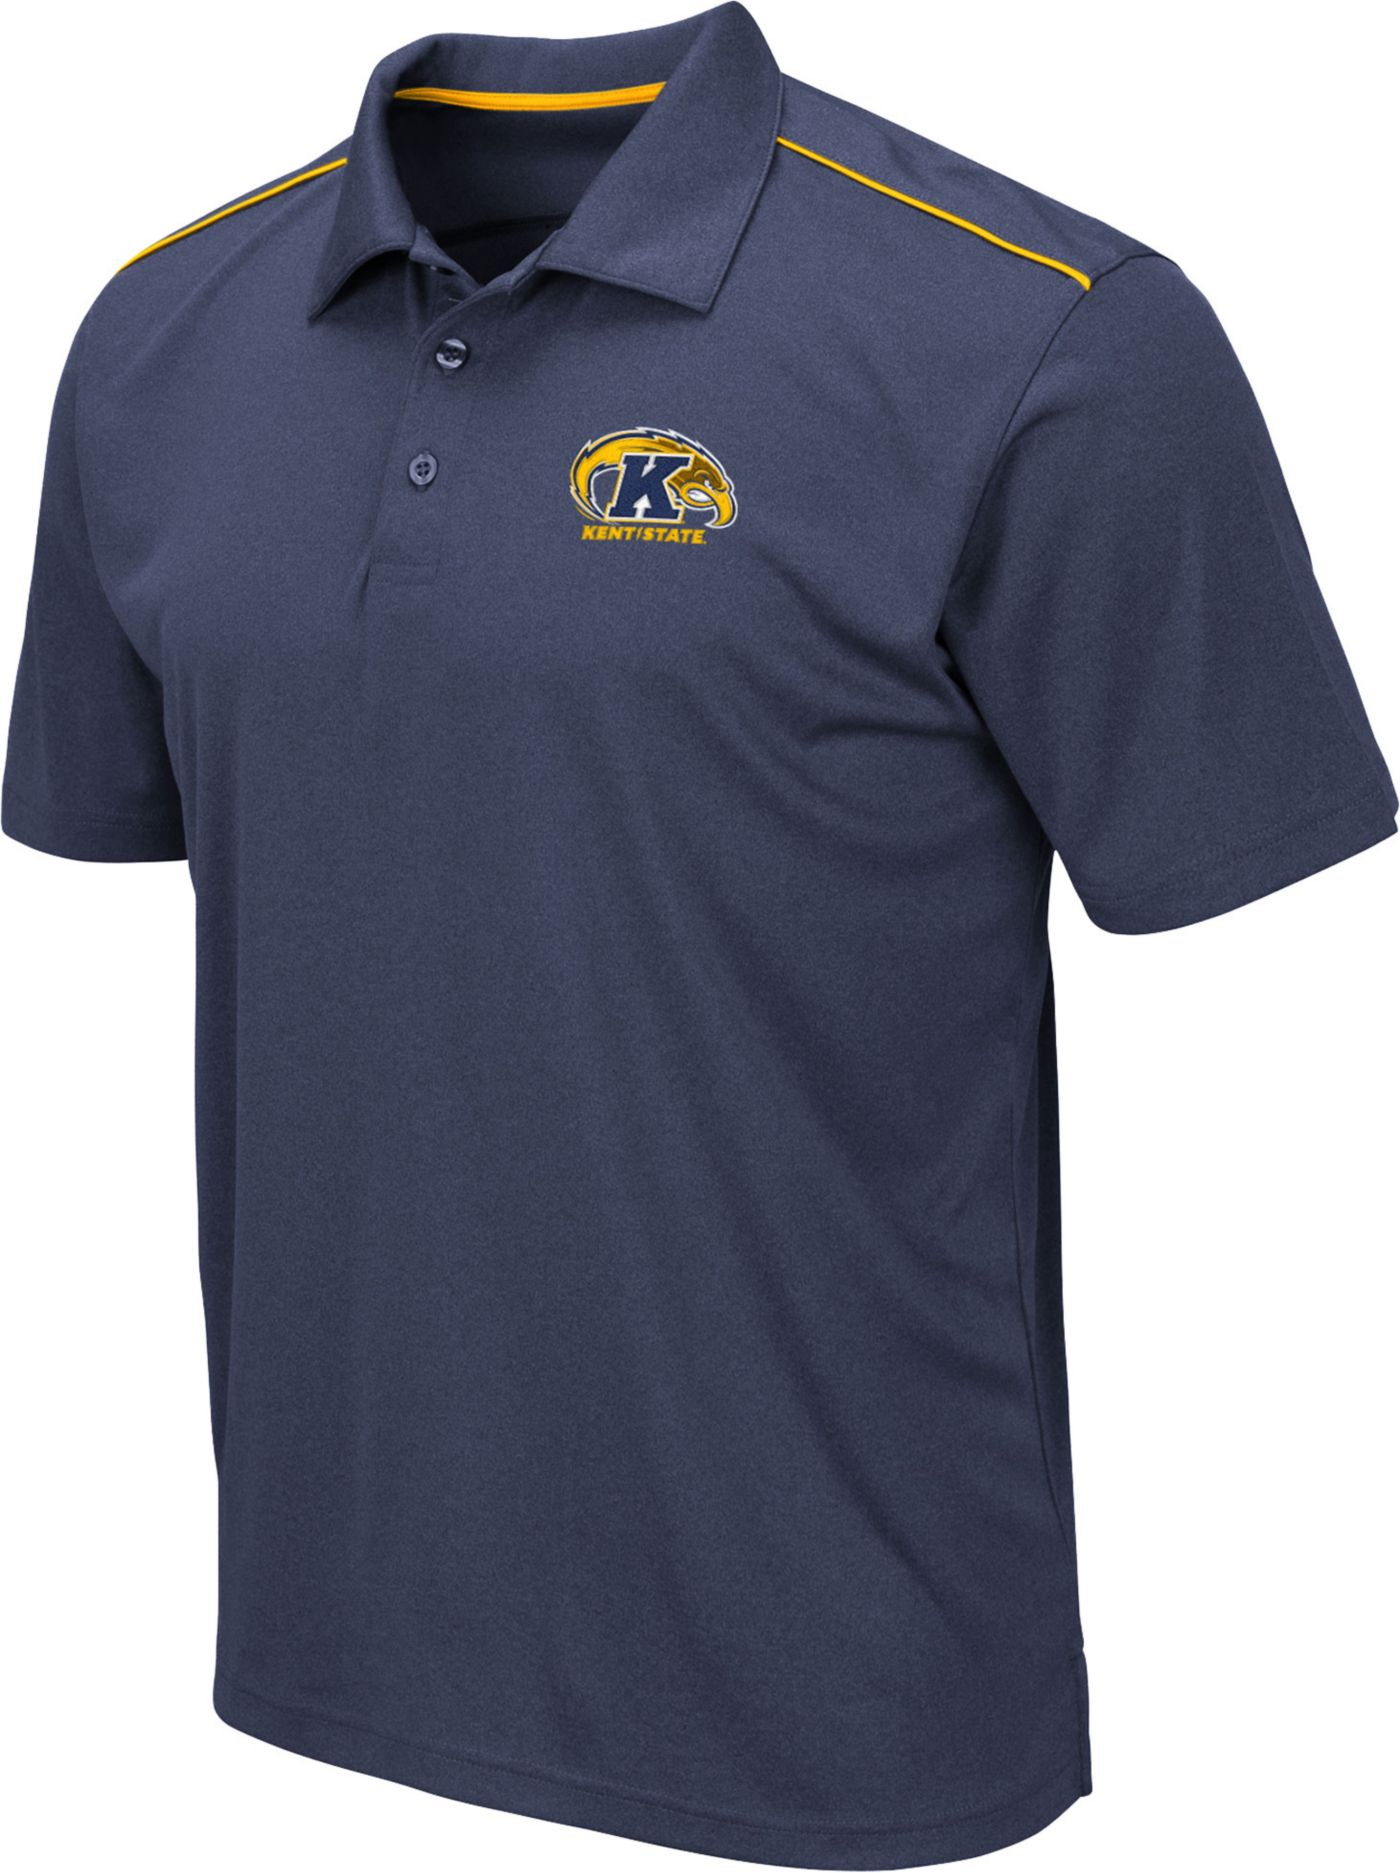 Colosseum Men's Kent State Golden Flashes Navy Blue Eagle Polo